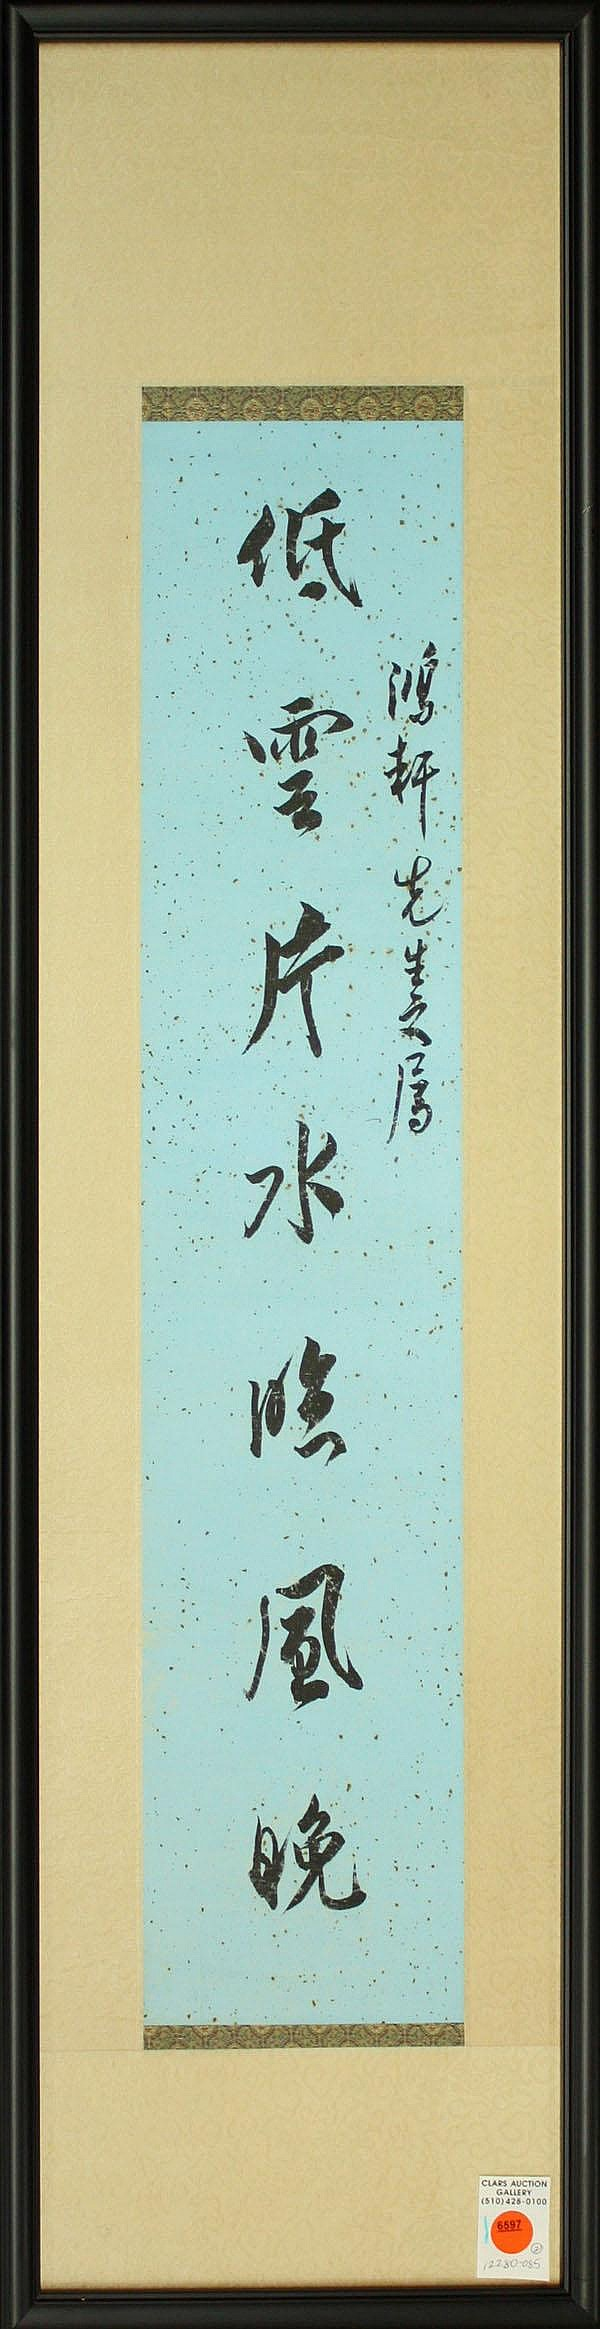 Chinese Calligraphy, Pu Xinyu (after)